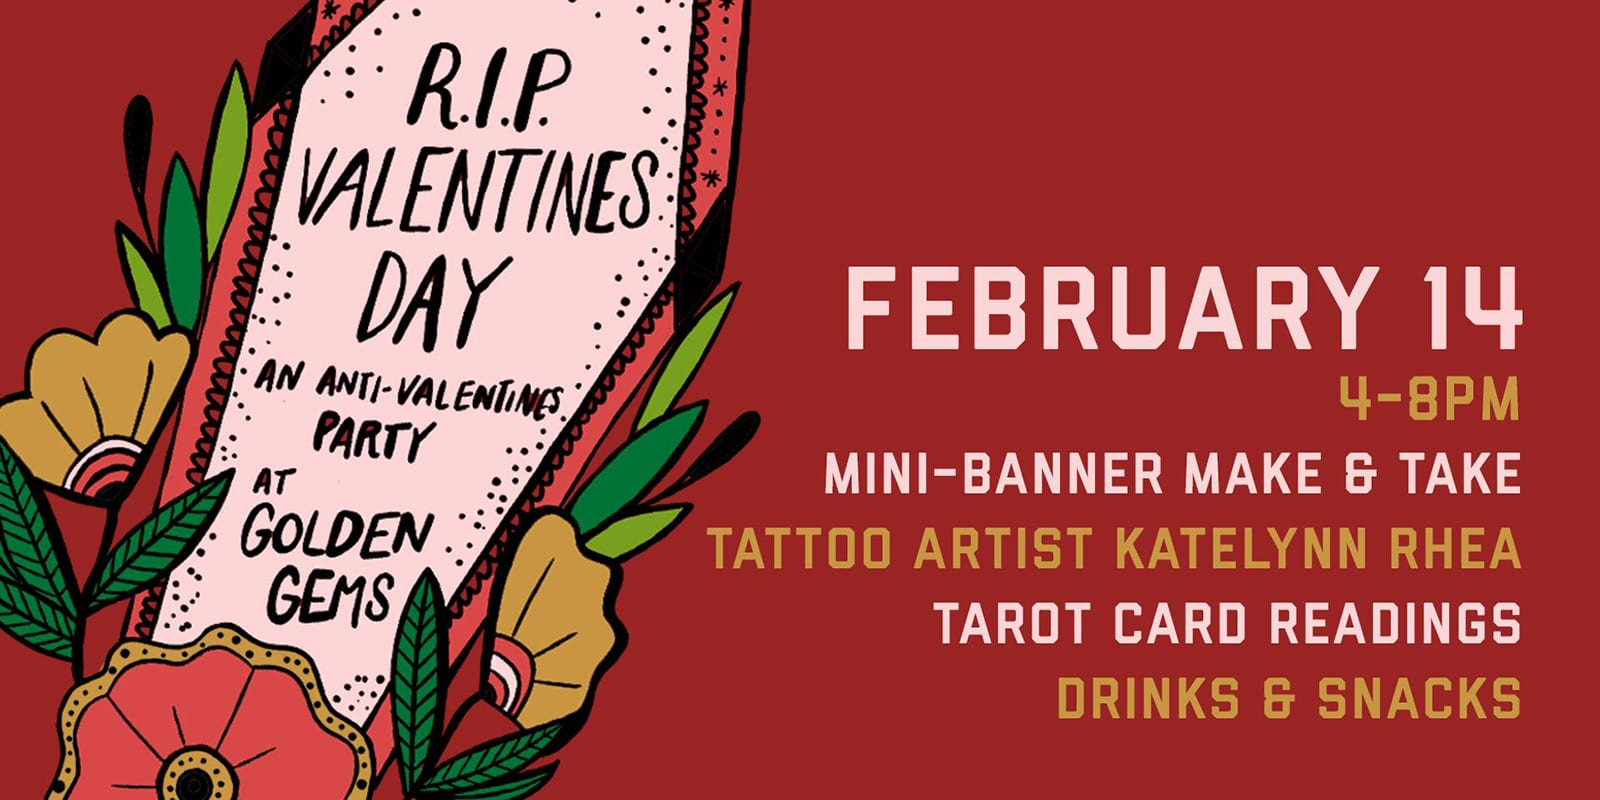 R.I.P. Valentine's Day, an anti-Valentine's Day party at Golden Gems.